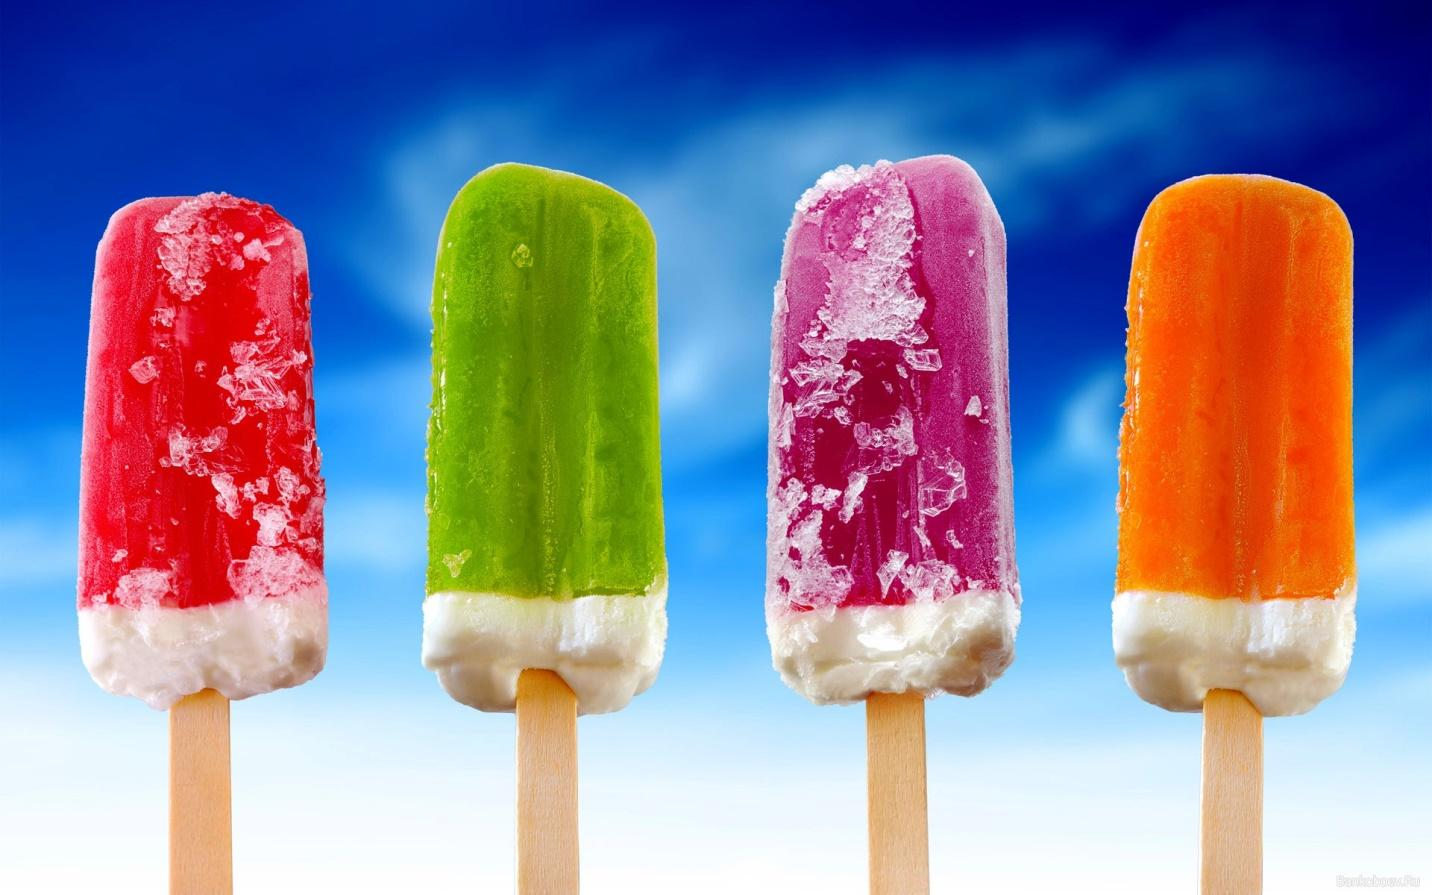 http://wallpaper4me.com/images/wallpapers/popsicles-671666.jpeg